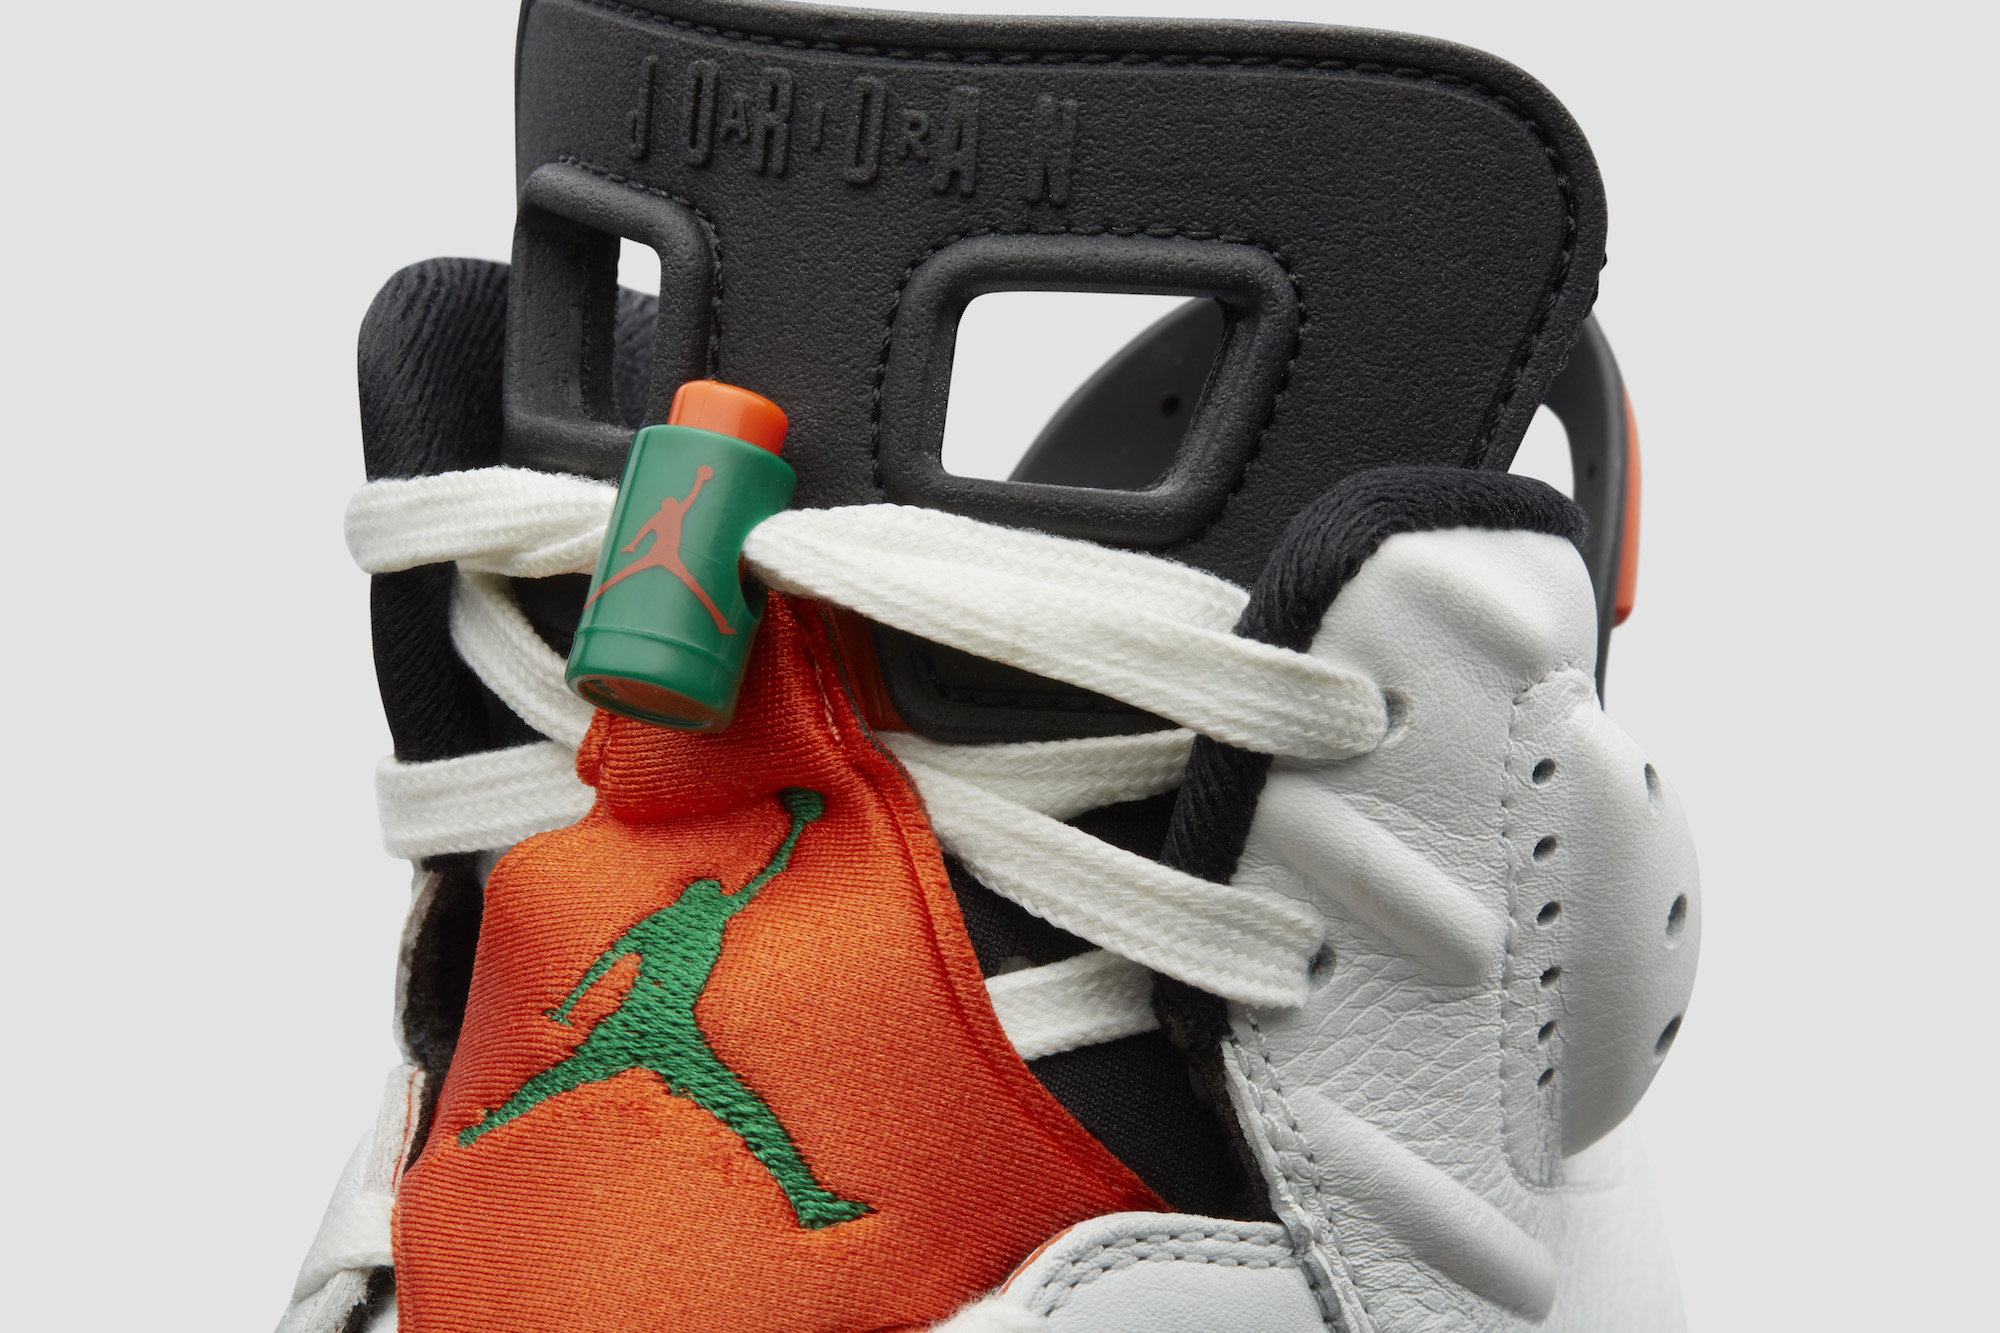 543cfd96777 jordan brand gatorade air jordan 6 like mike 7 - WearTesters